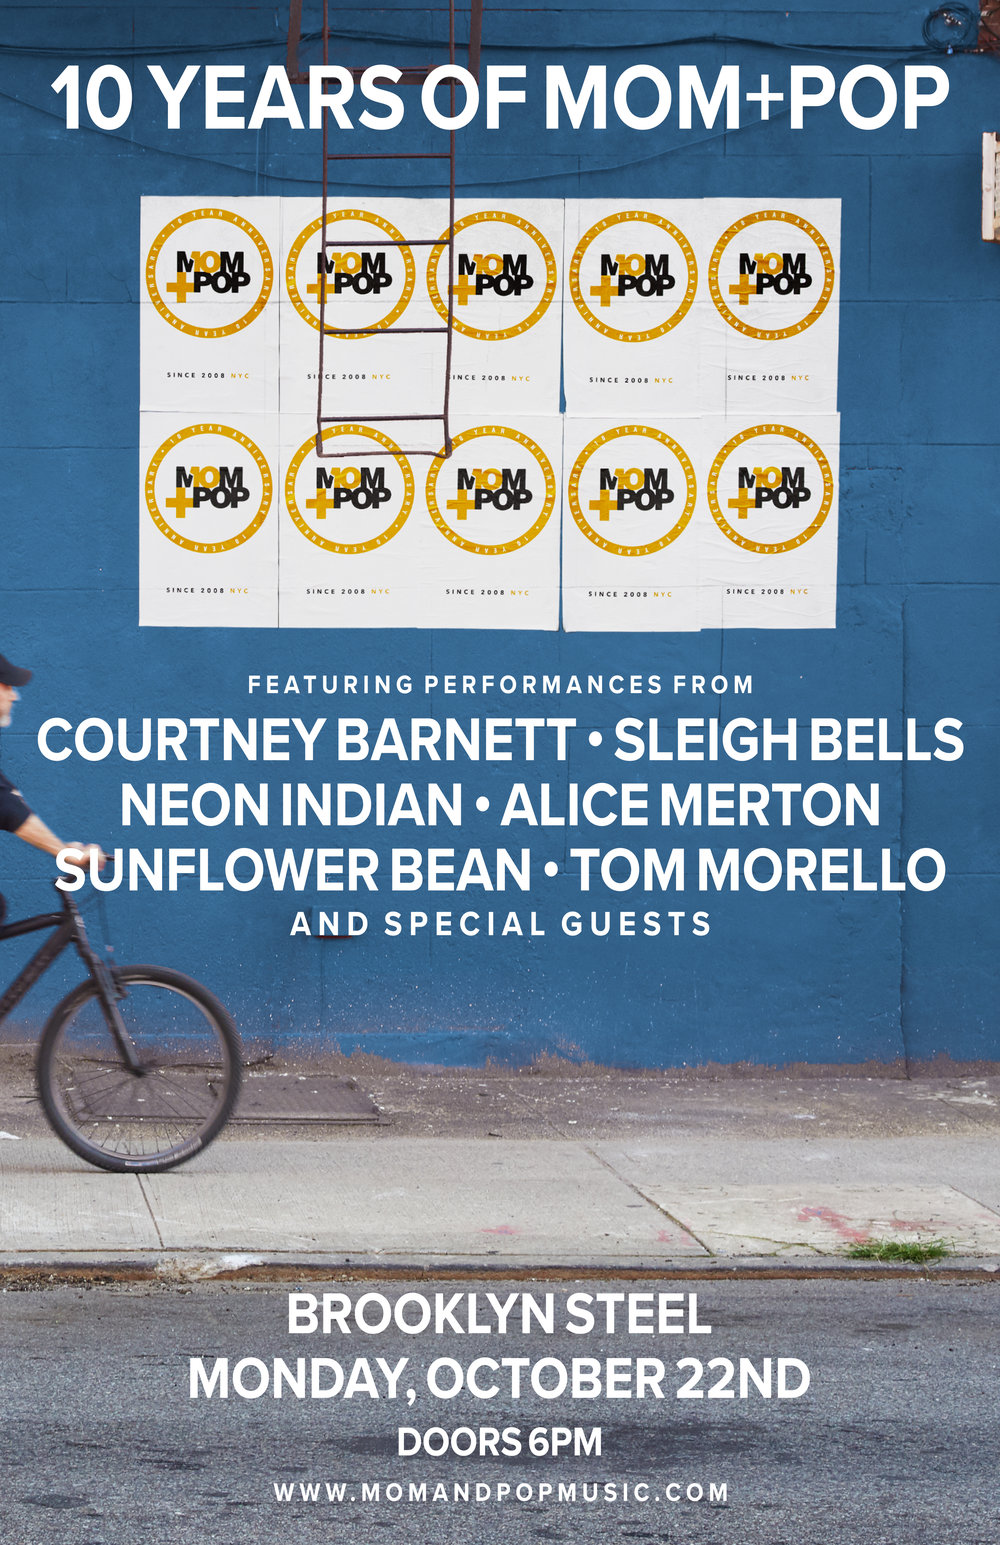 10 Years of Mom + Pop Anniversary Show - We are honored to announce that we're bringing this celebration to life for one night only in our home town of New York City. Performances by Courtney Barnett, Alice Merton, Sunflower Bean, Neon Indian, Sleigh Bells, Tom Morello and special guests. See below for show info and tickets.DATE/TIME: Monday October 22nd 2018, Doors @6 pm ESTVENUE: Brooklyn Steel (319 Frost St, Brooklyn, NY 11222)TICKETS: General Admission OR VIP Ticket Bundles